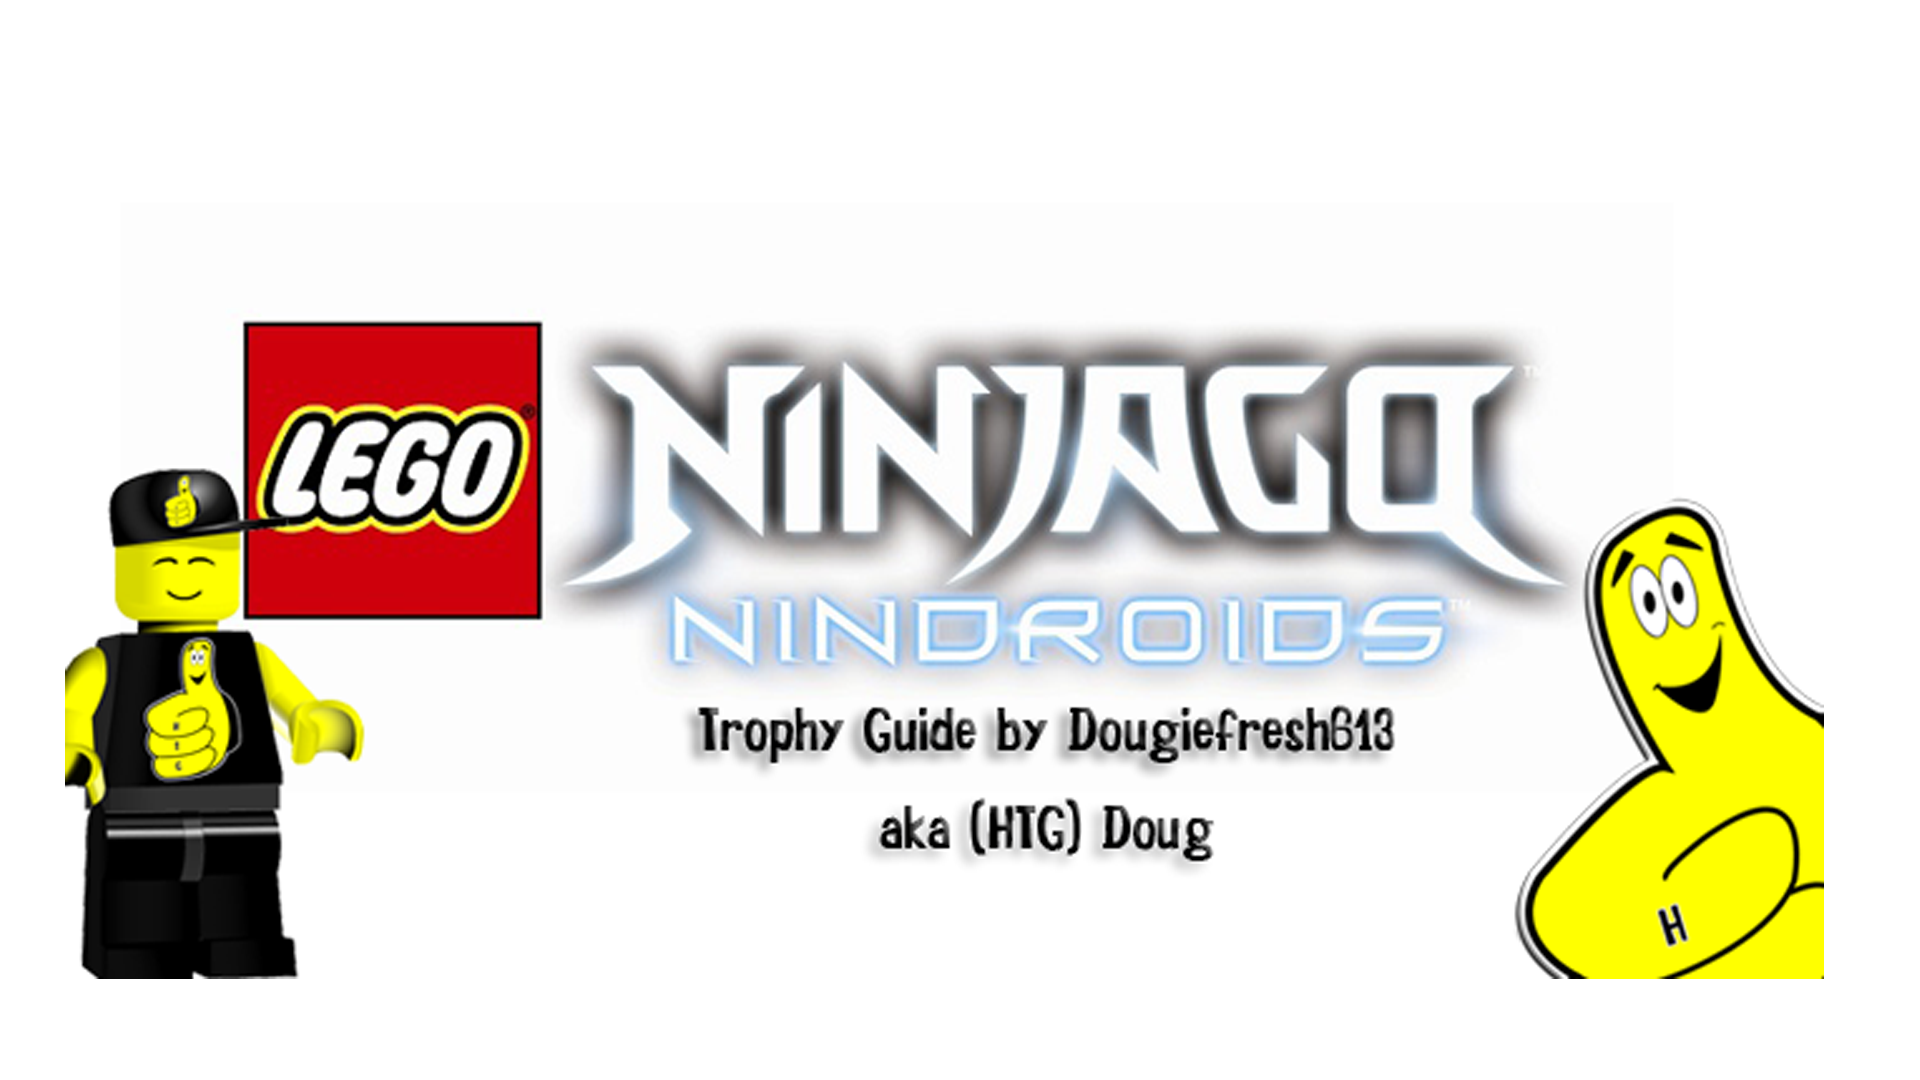 LegoNinjagoNindroids_Featured